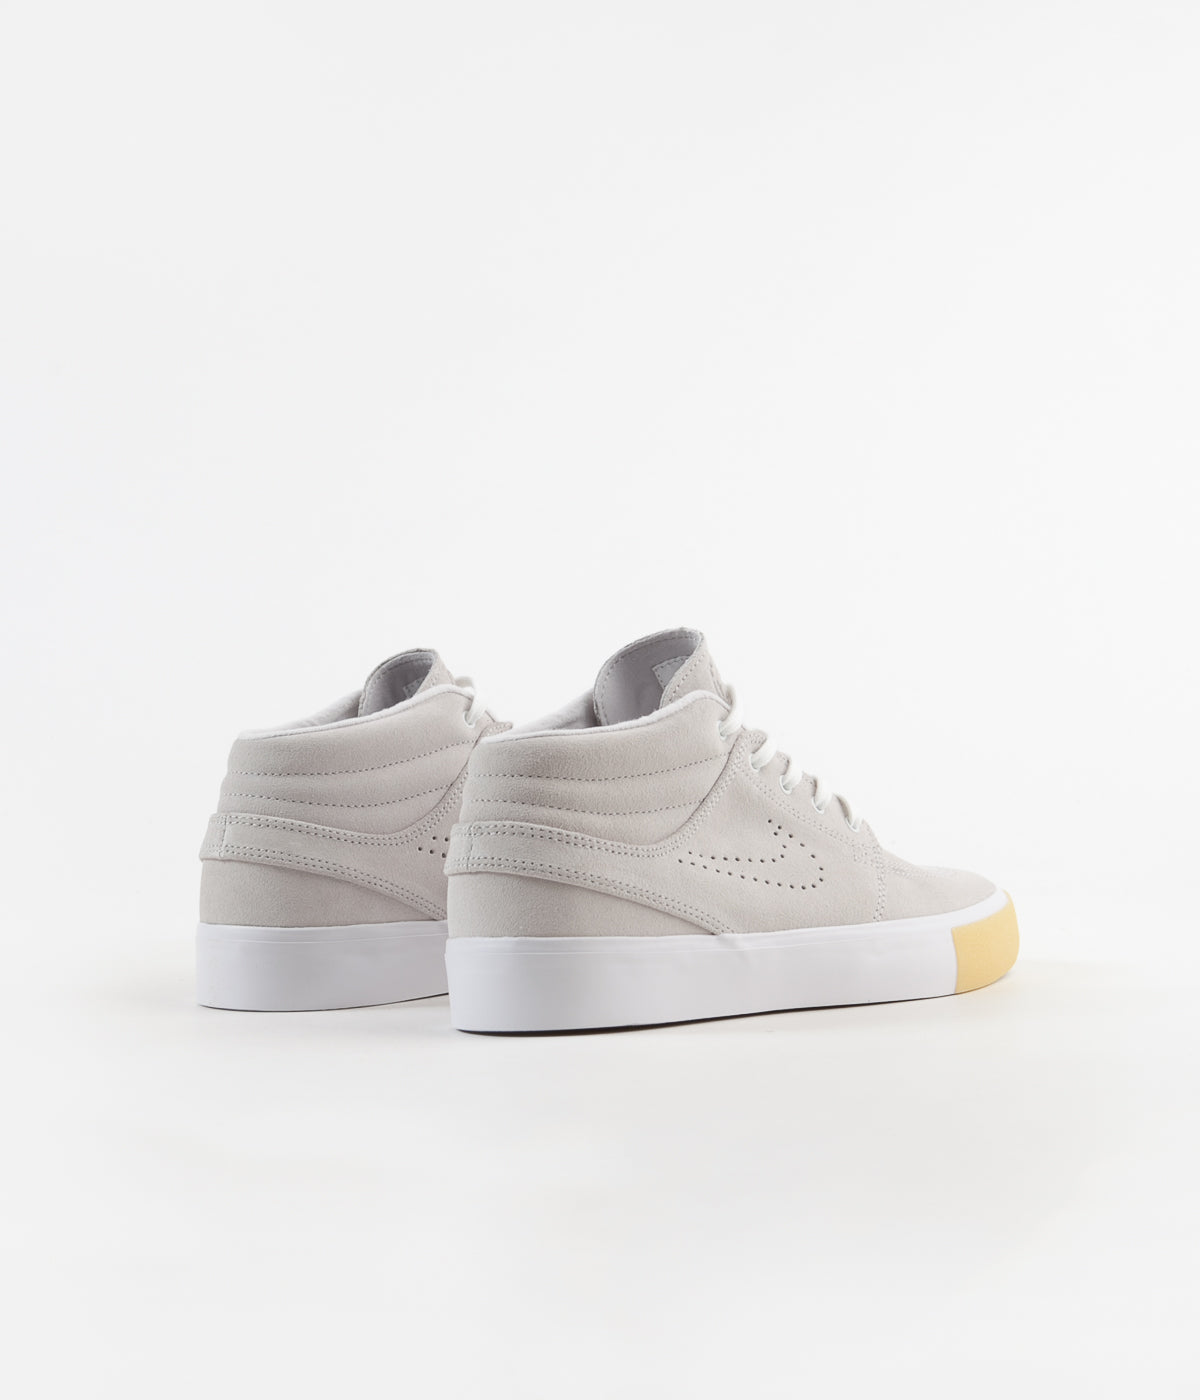 Nike SB Janoski Mid Remastered Shoes - White / White - Vast Grey - Gum Yellow